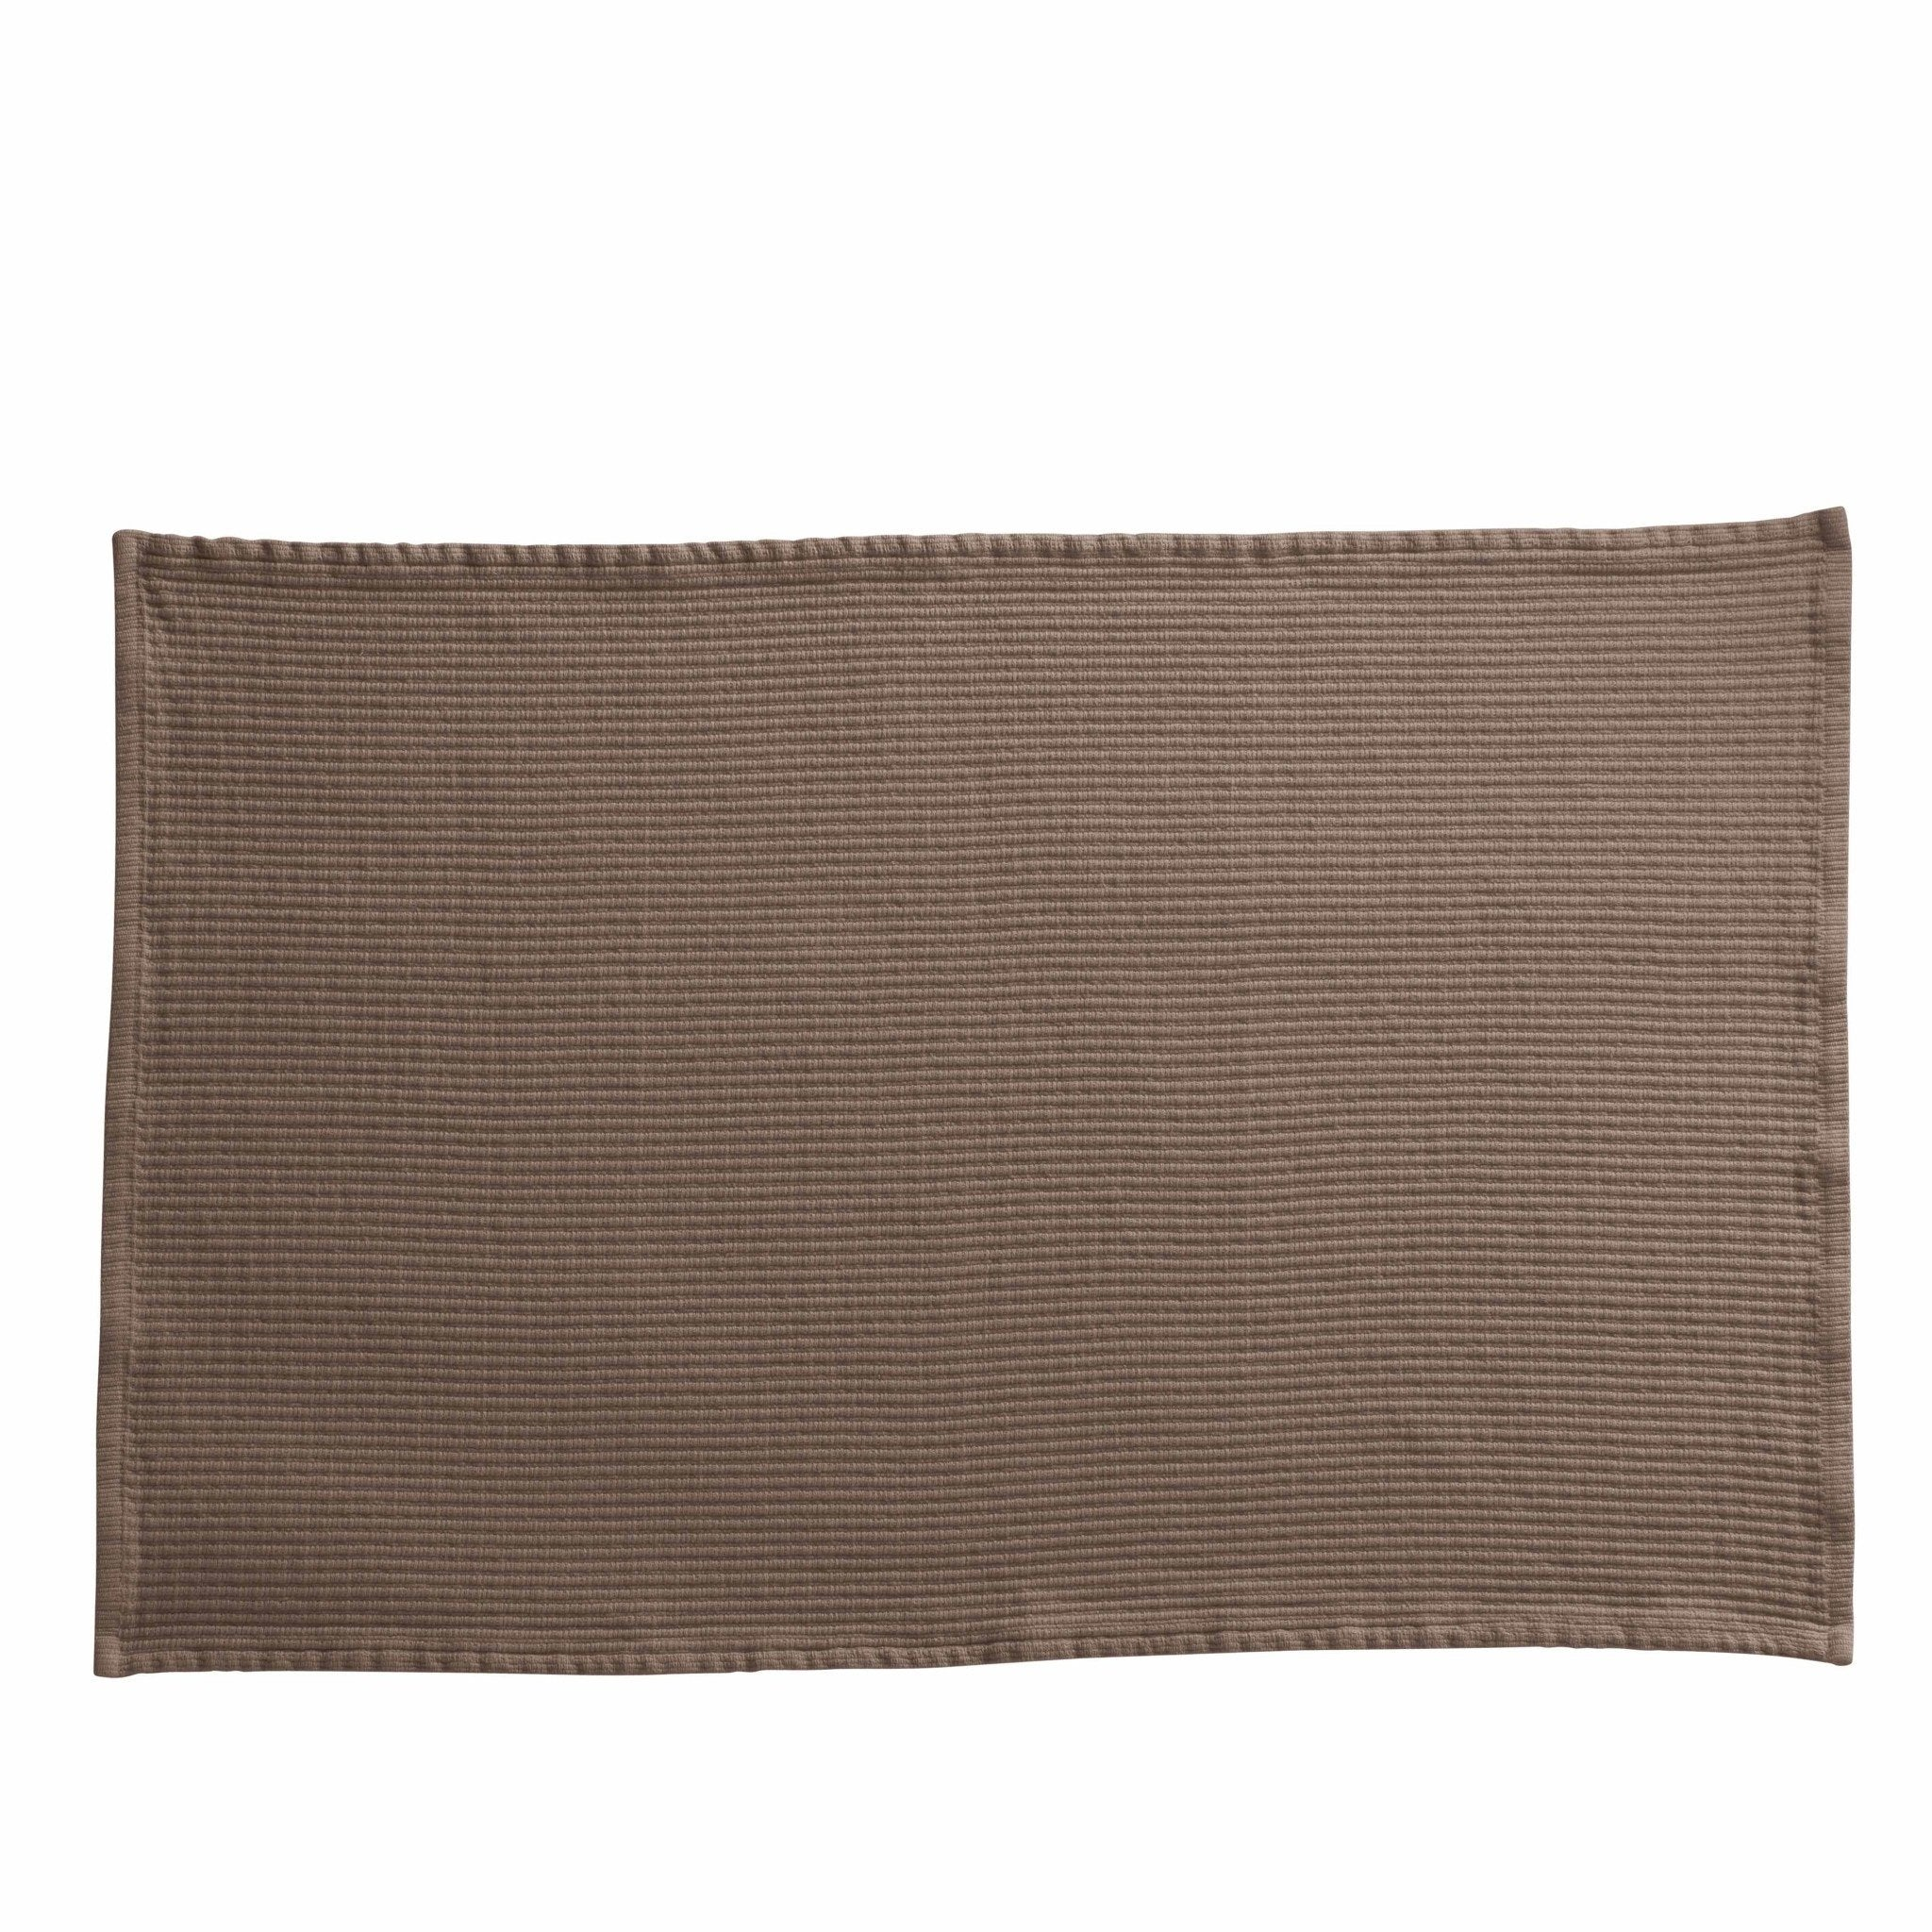 rectangular bath mat in a camel color by designer tine k